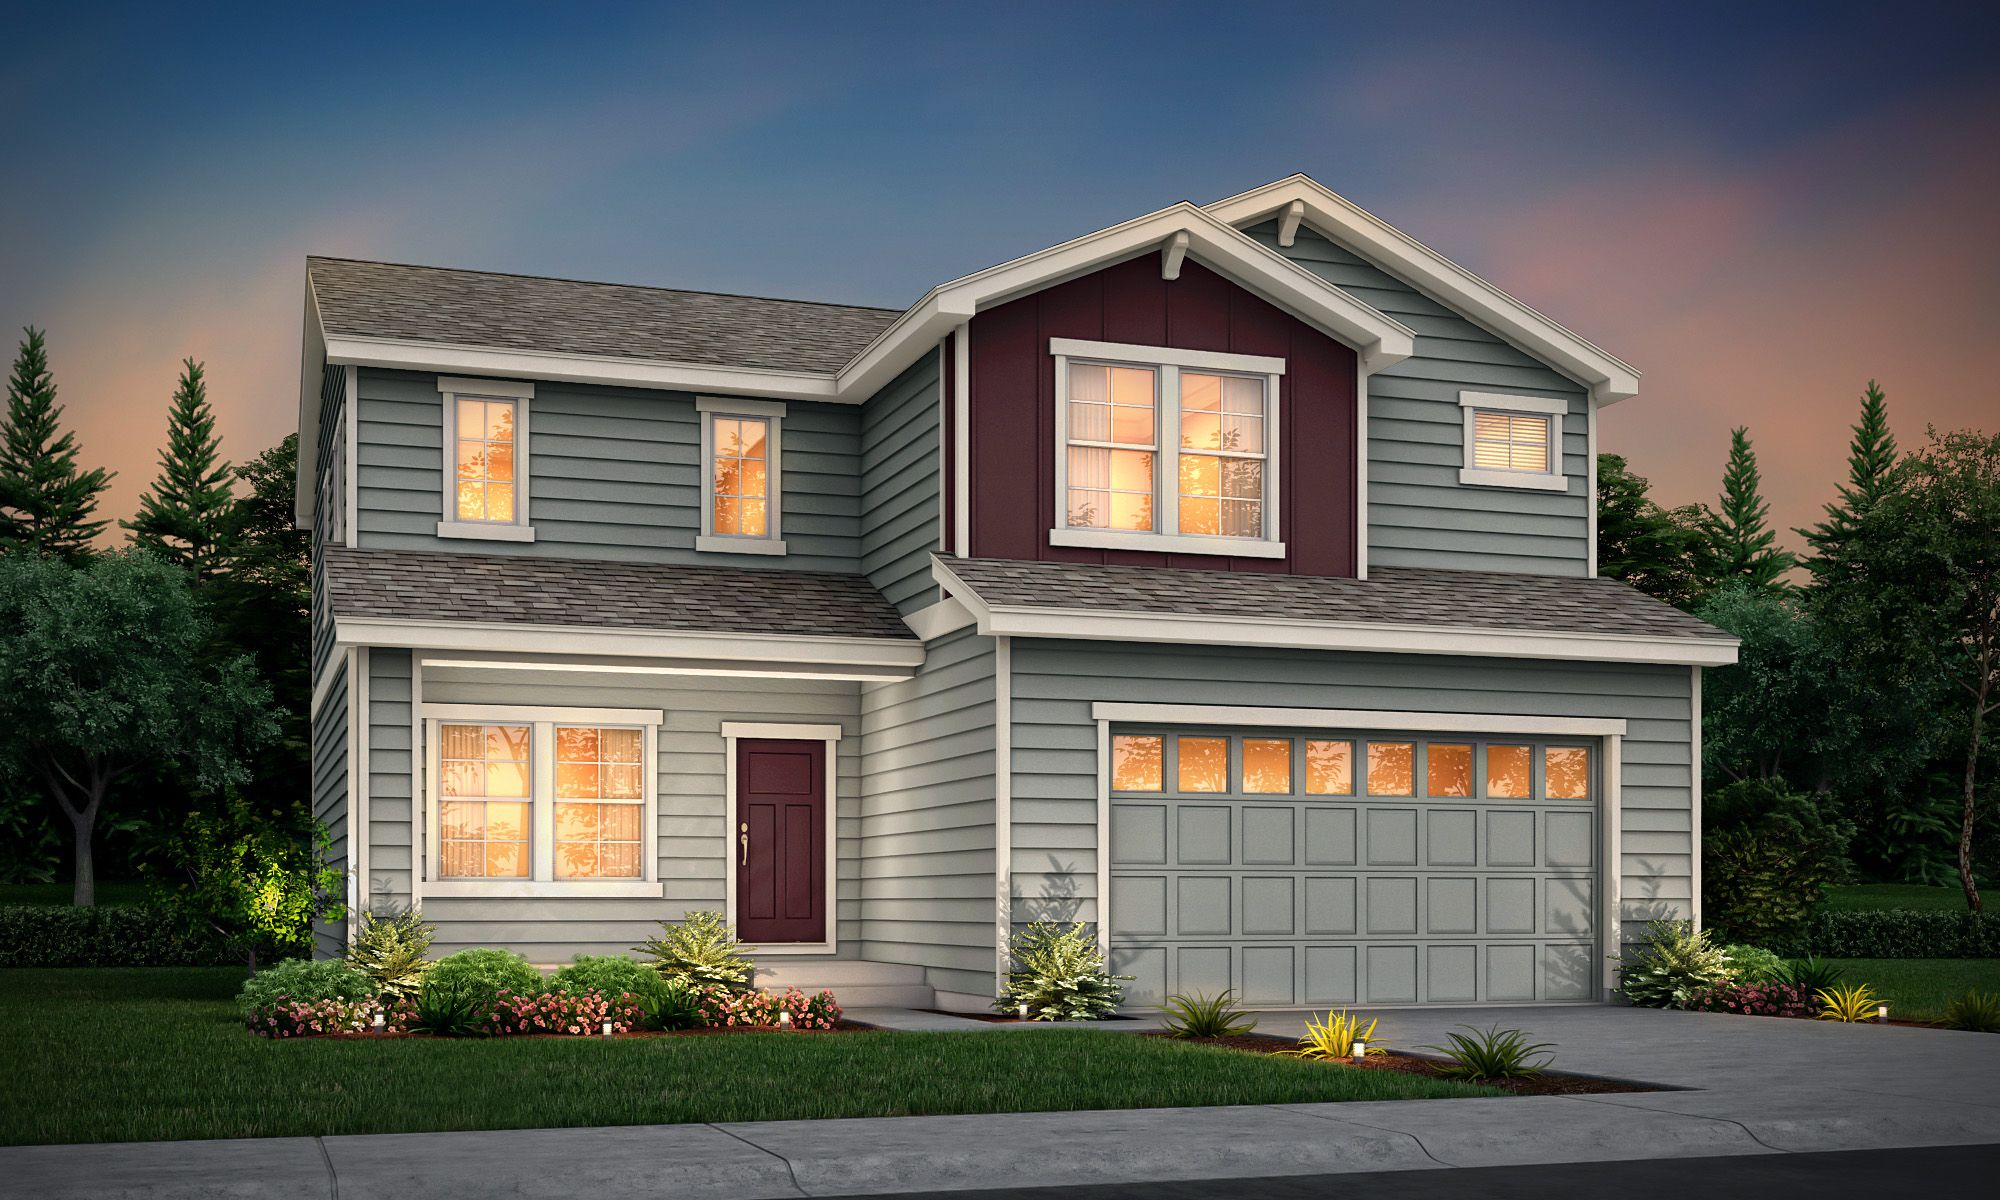 Exterior featured in the Malibu Heritage Series By View Homes Colorado Springs